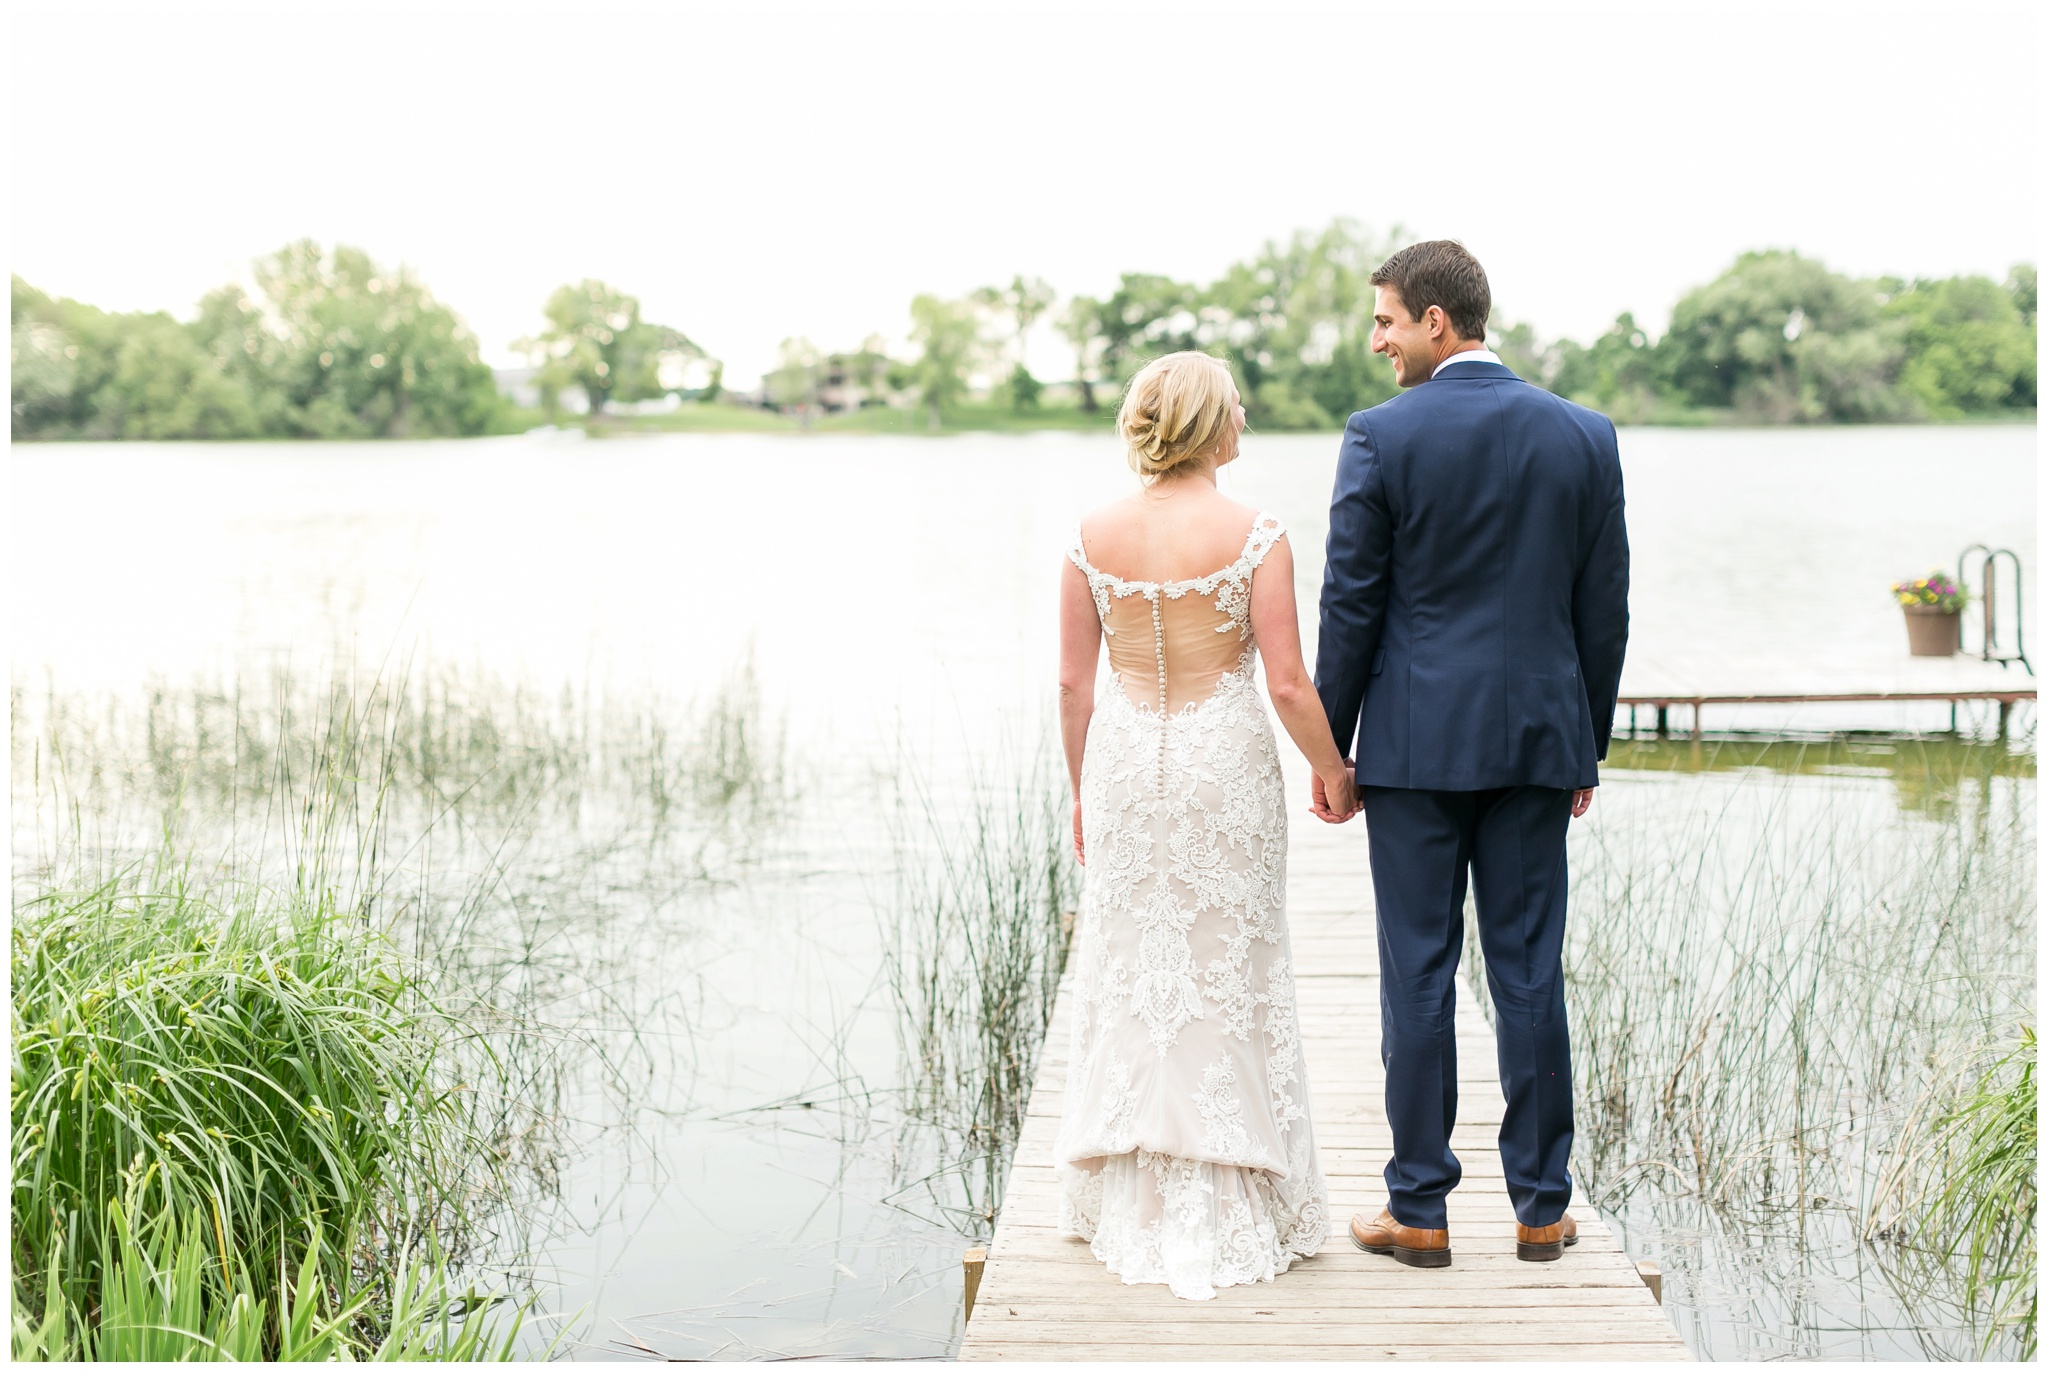 private_estate_wedding_stoughton_wisconsin_wedding_caynay_photo_3881.jpg